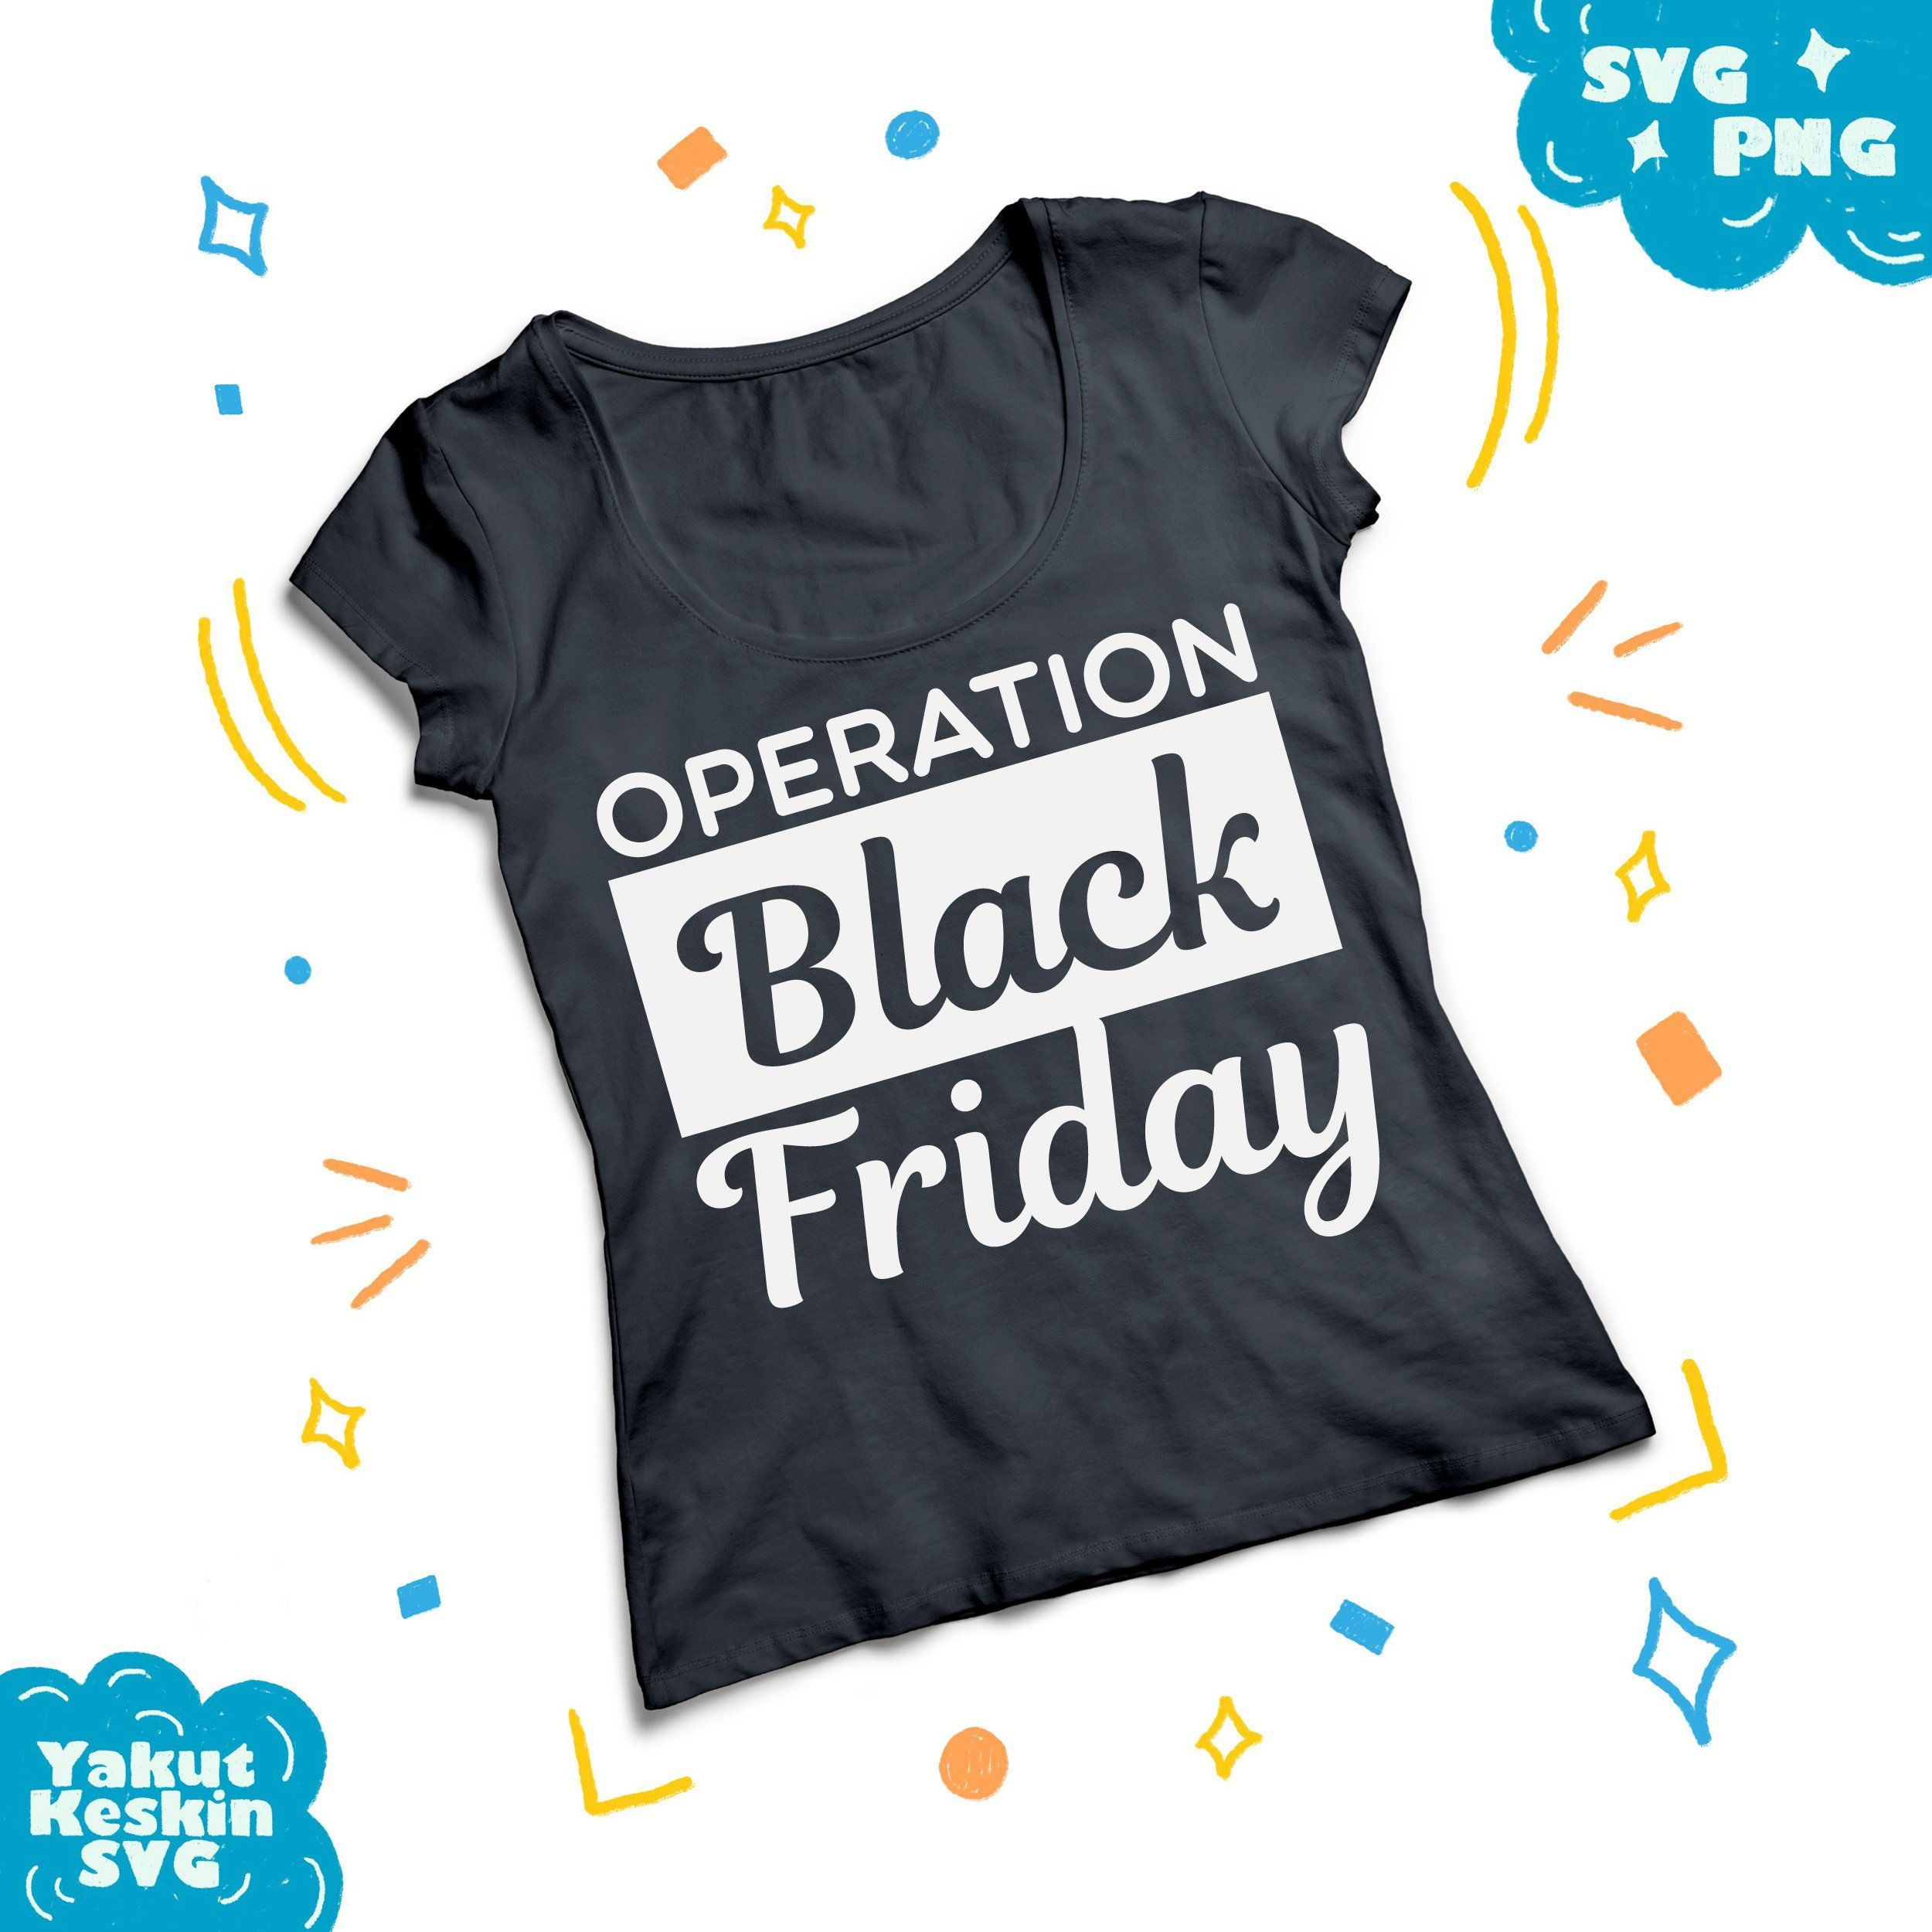 Clothing items shirt clipart banner stock Operation black Friday SVG funny black friday deals shopping shirt ... banner stock